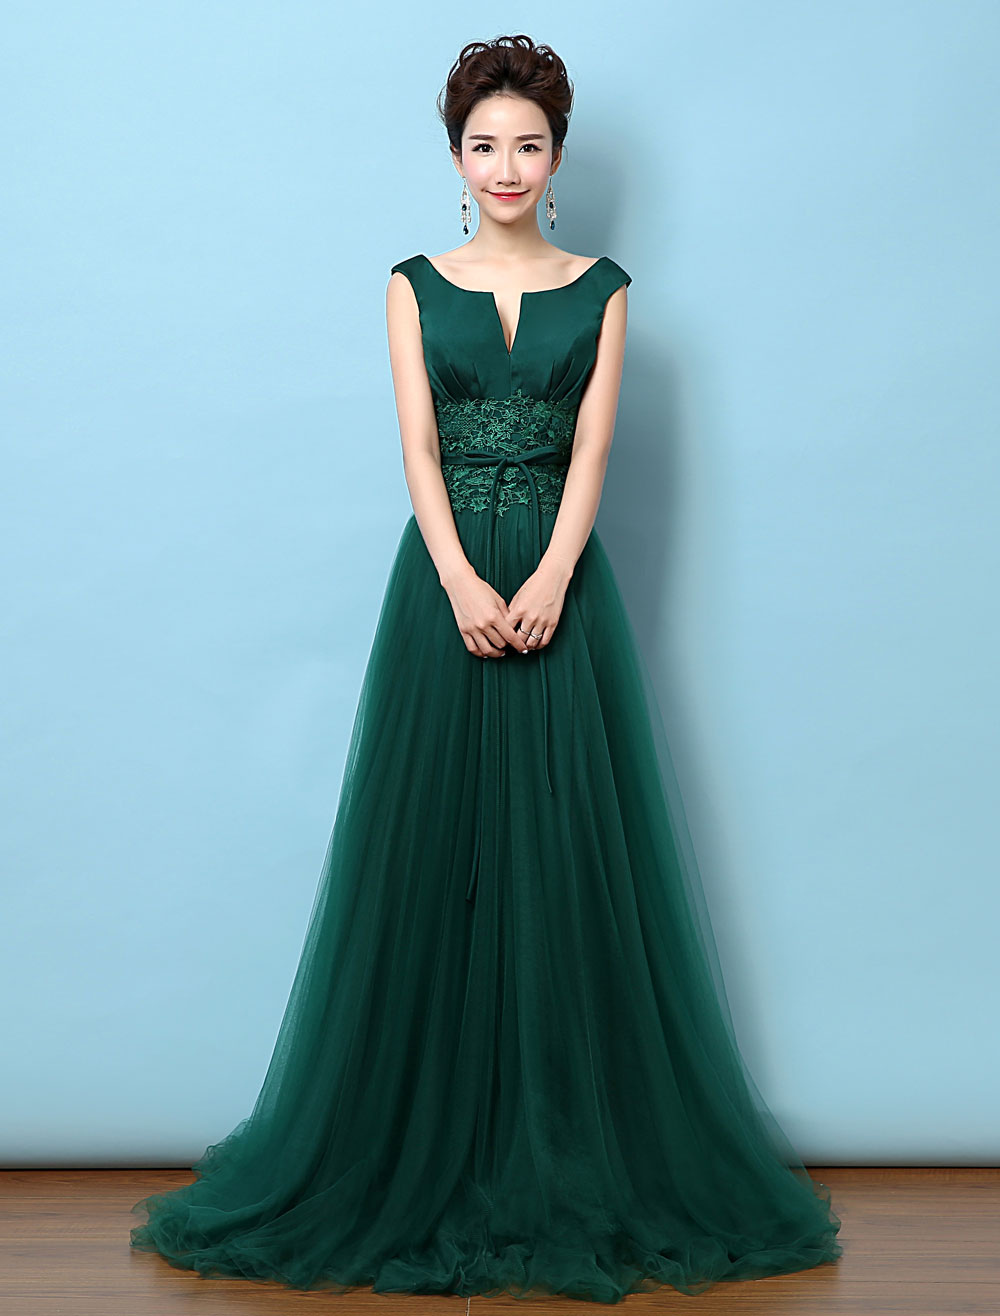 Tulle Evening Dress Backless Mother's Dress Dark Green Notched Neckline Lace Applique Bow Wedding Guest Dresses With Train (Evening Dresses) photo